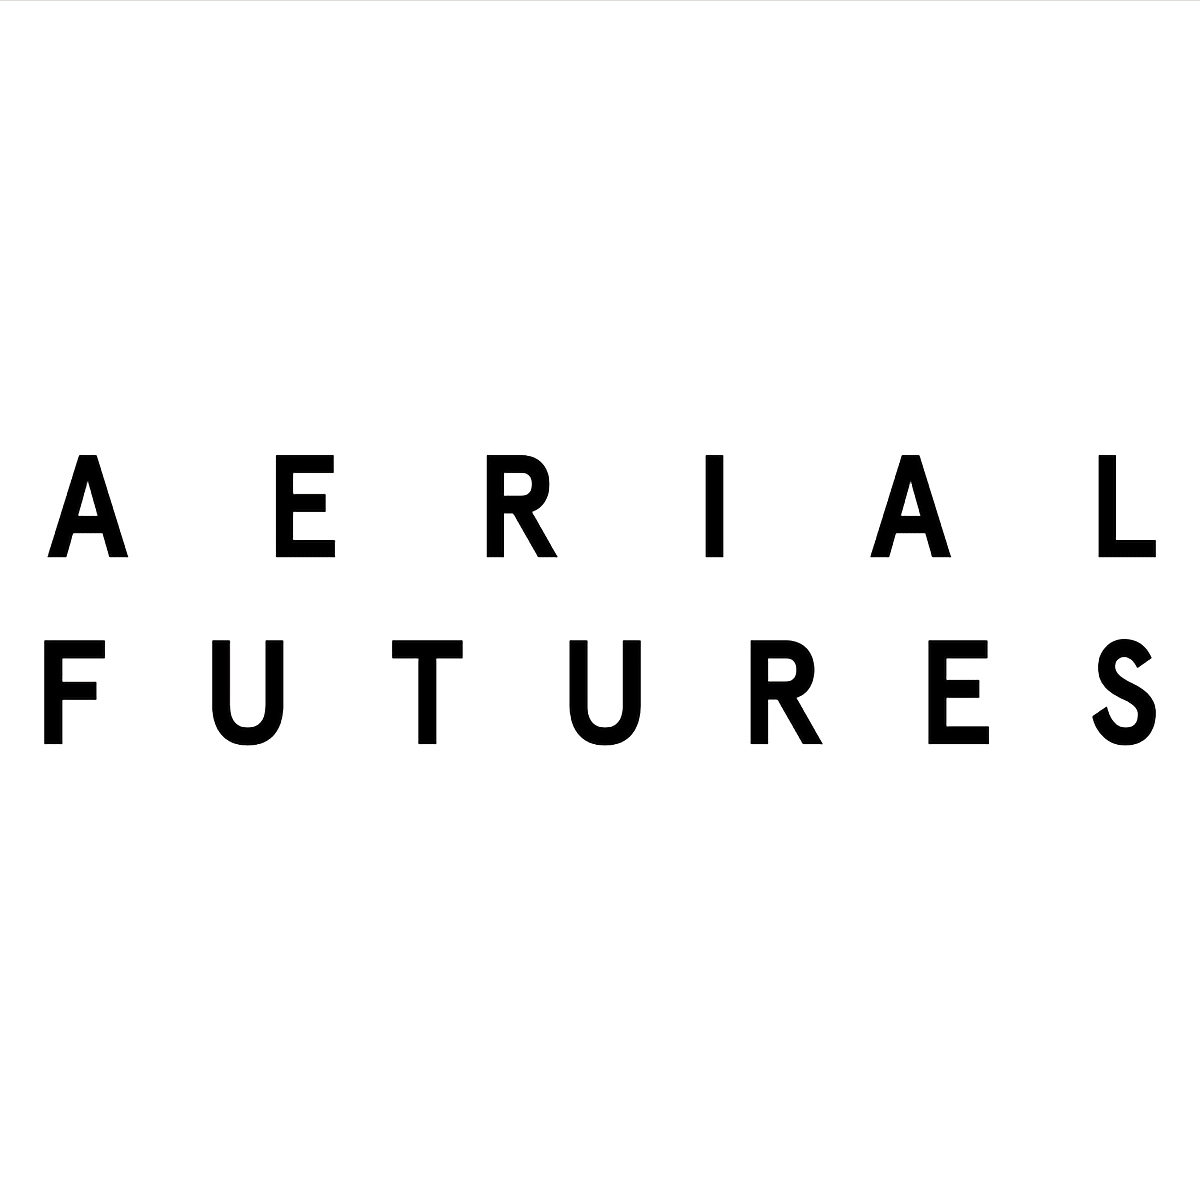 AERIAL FUTURES - Living Laboratories Symposium - Open Call for Papers